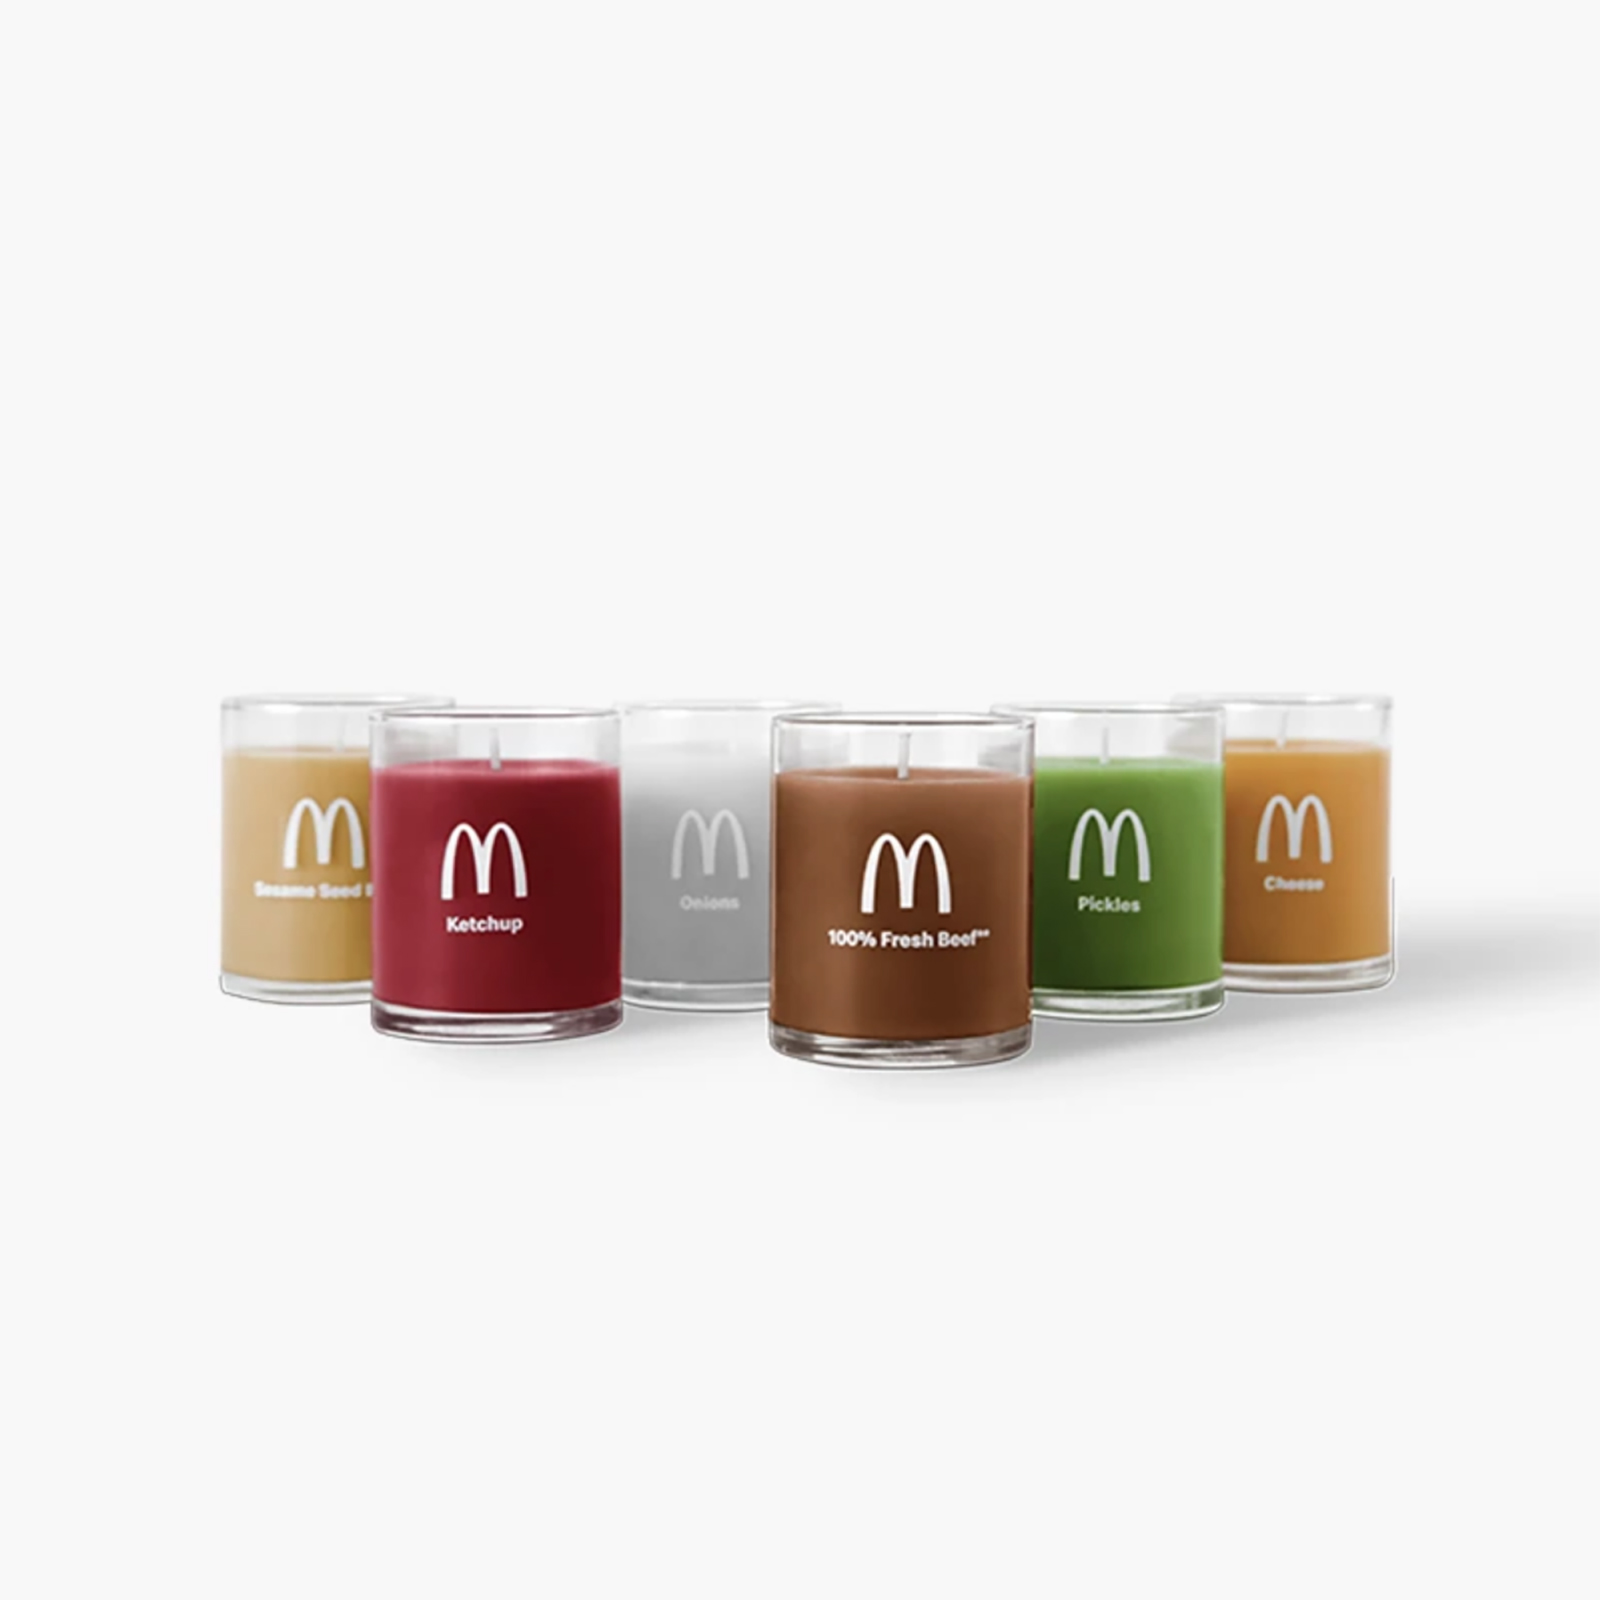 McDonald's is making scented candles that smell like your favorite Quarter Pounder ingredients